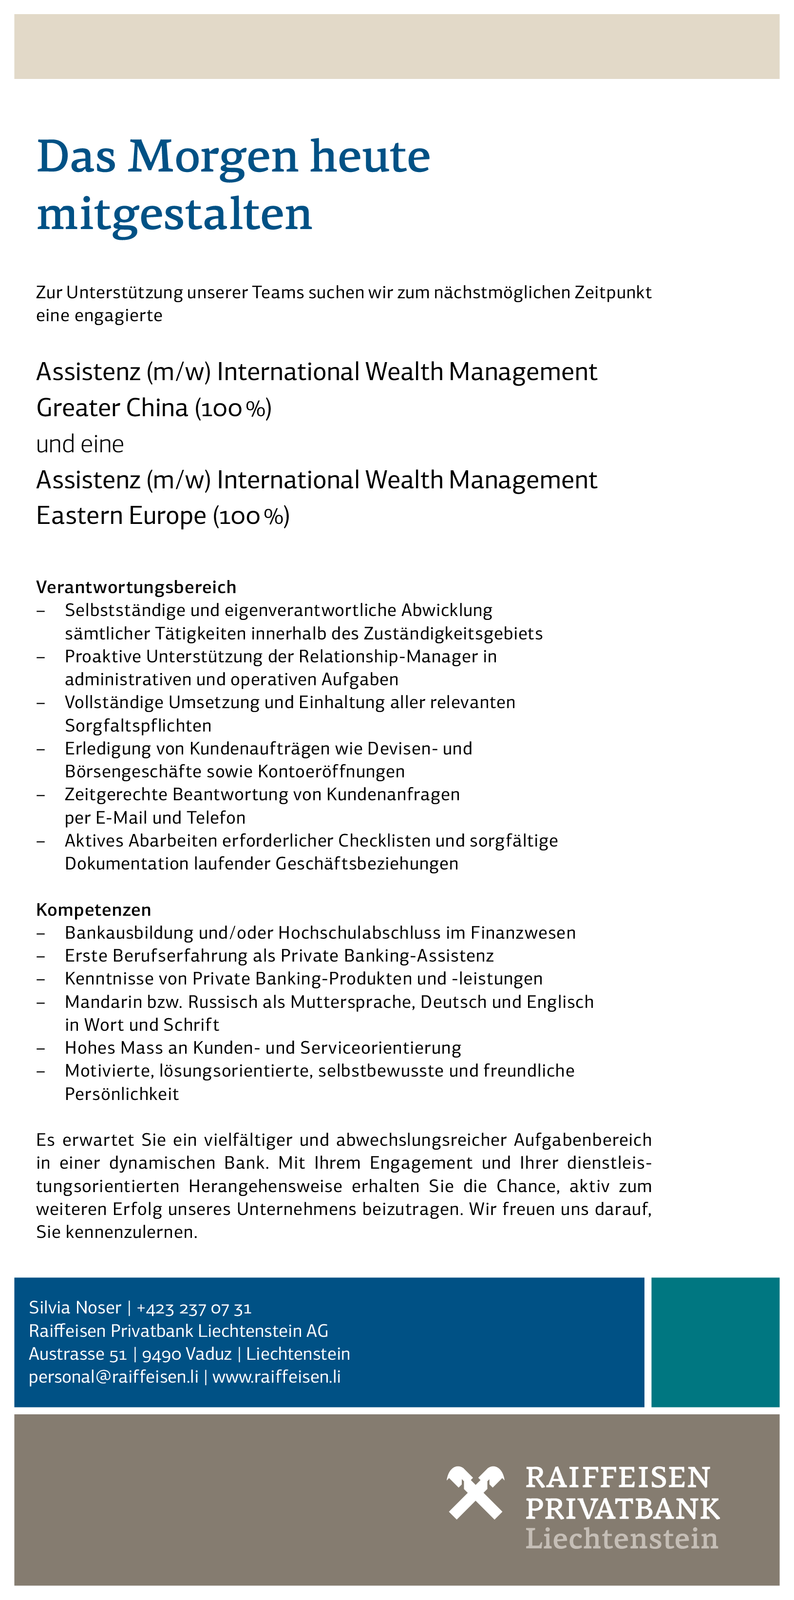 Assistenz (m/w) Intern. Wealth Management Greater China und Assistenz (m/w) Intern. Wealth Management Eastern Europe